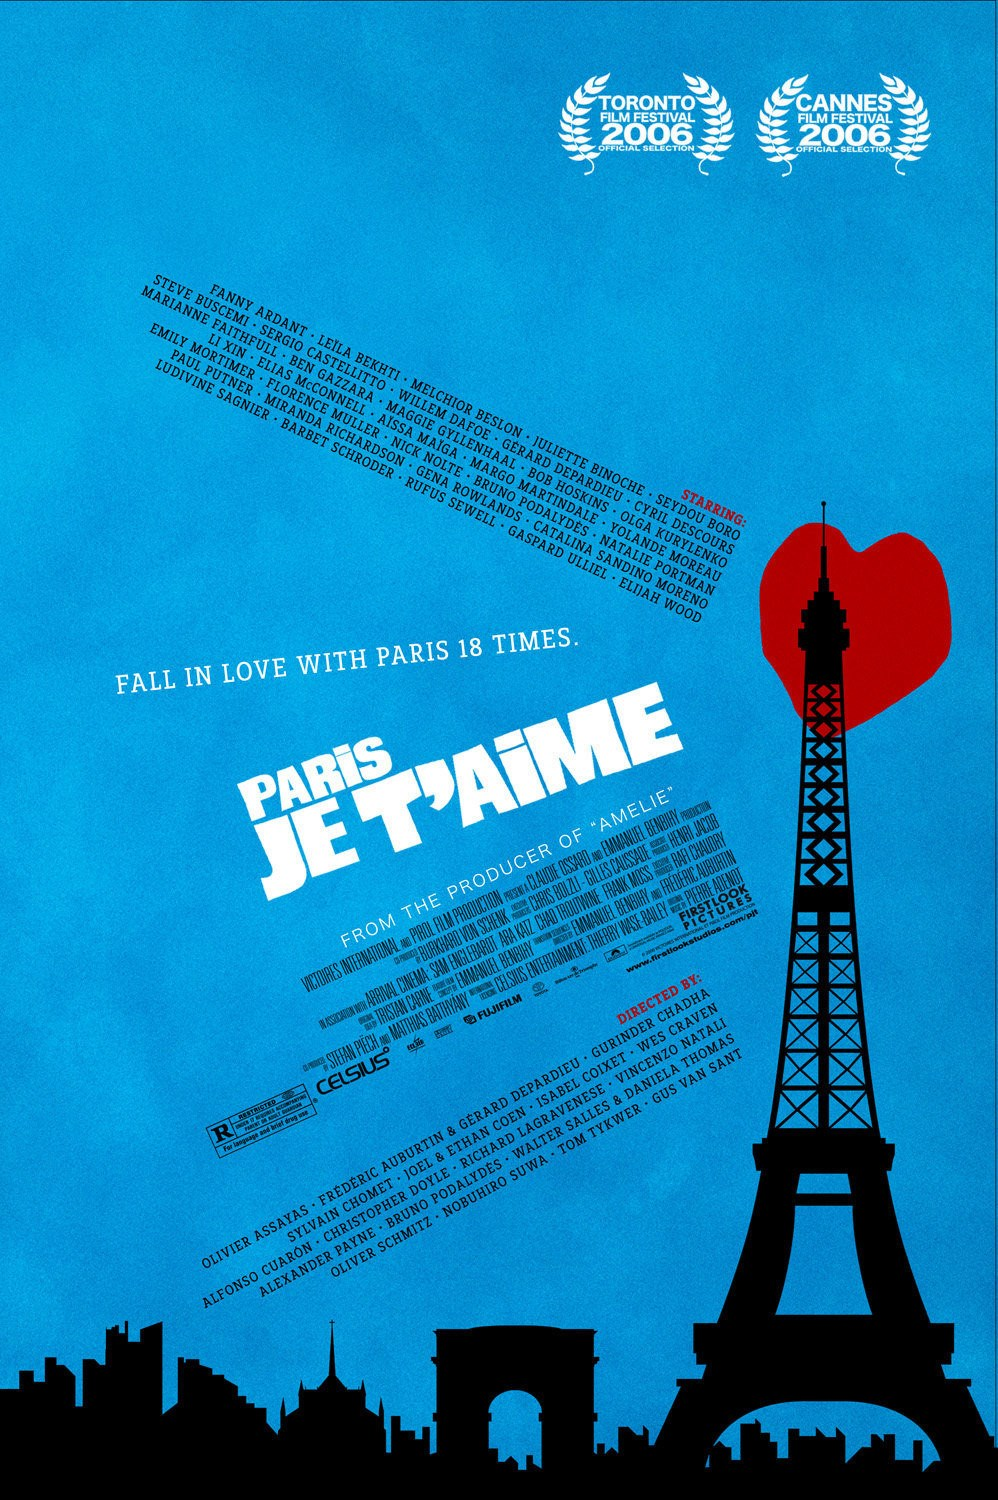 I Love Paris Wallpaper cartoon : Subscene - Subtitles for Paris, I Love You (Paris, je t aime)